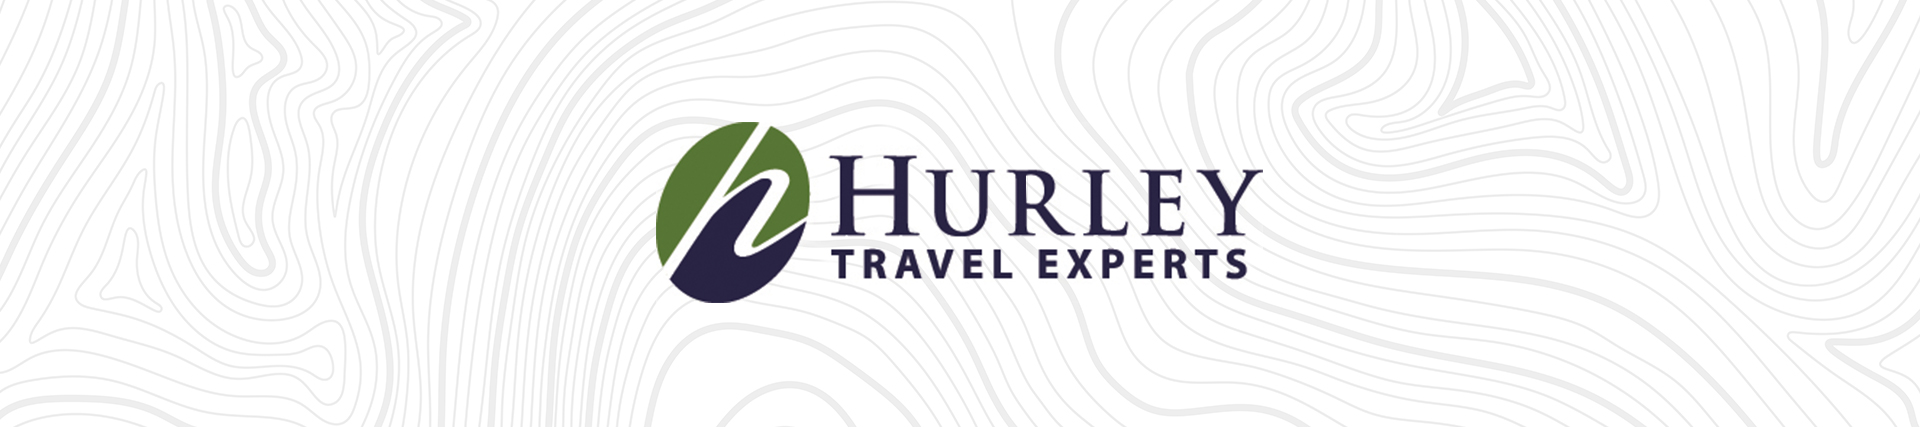 Direct Travel, Inc. Announces Acquisition of Hurley Travel Experts